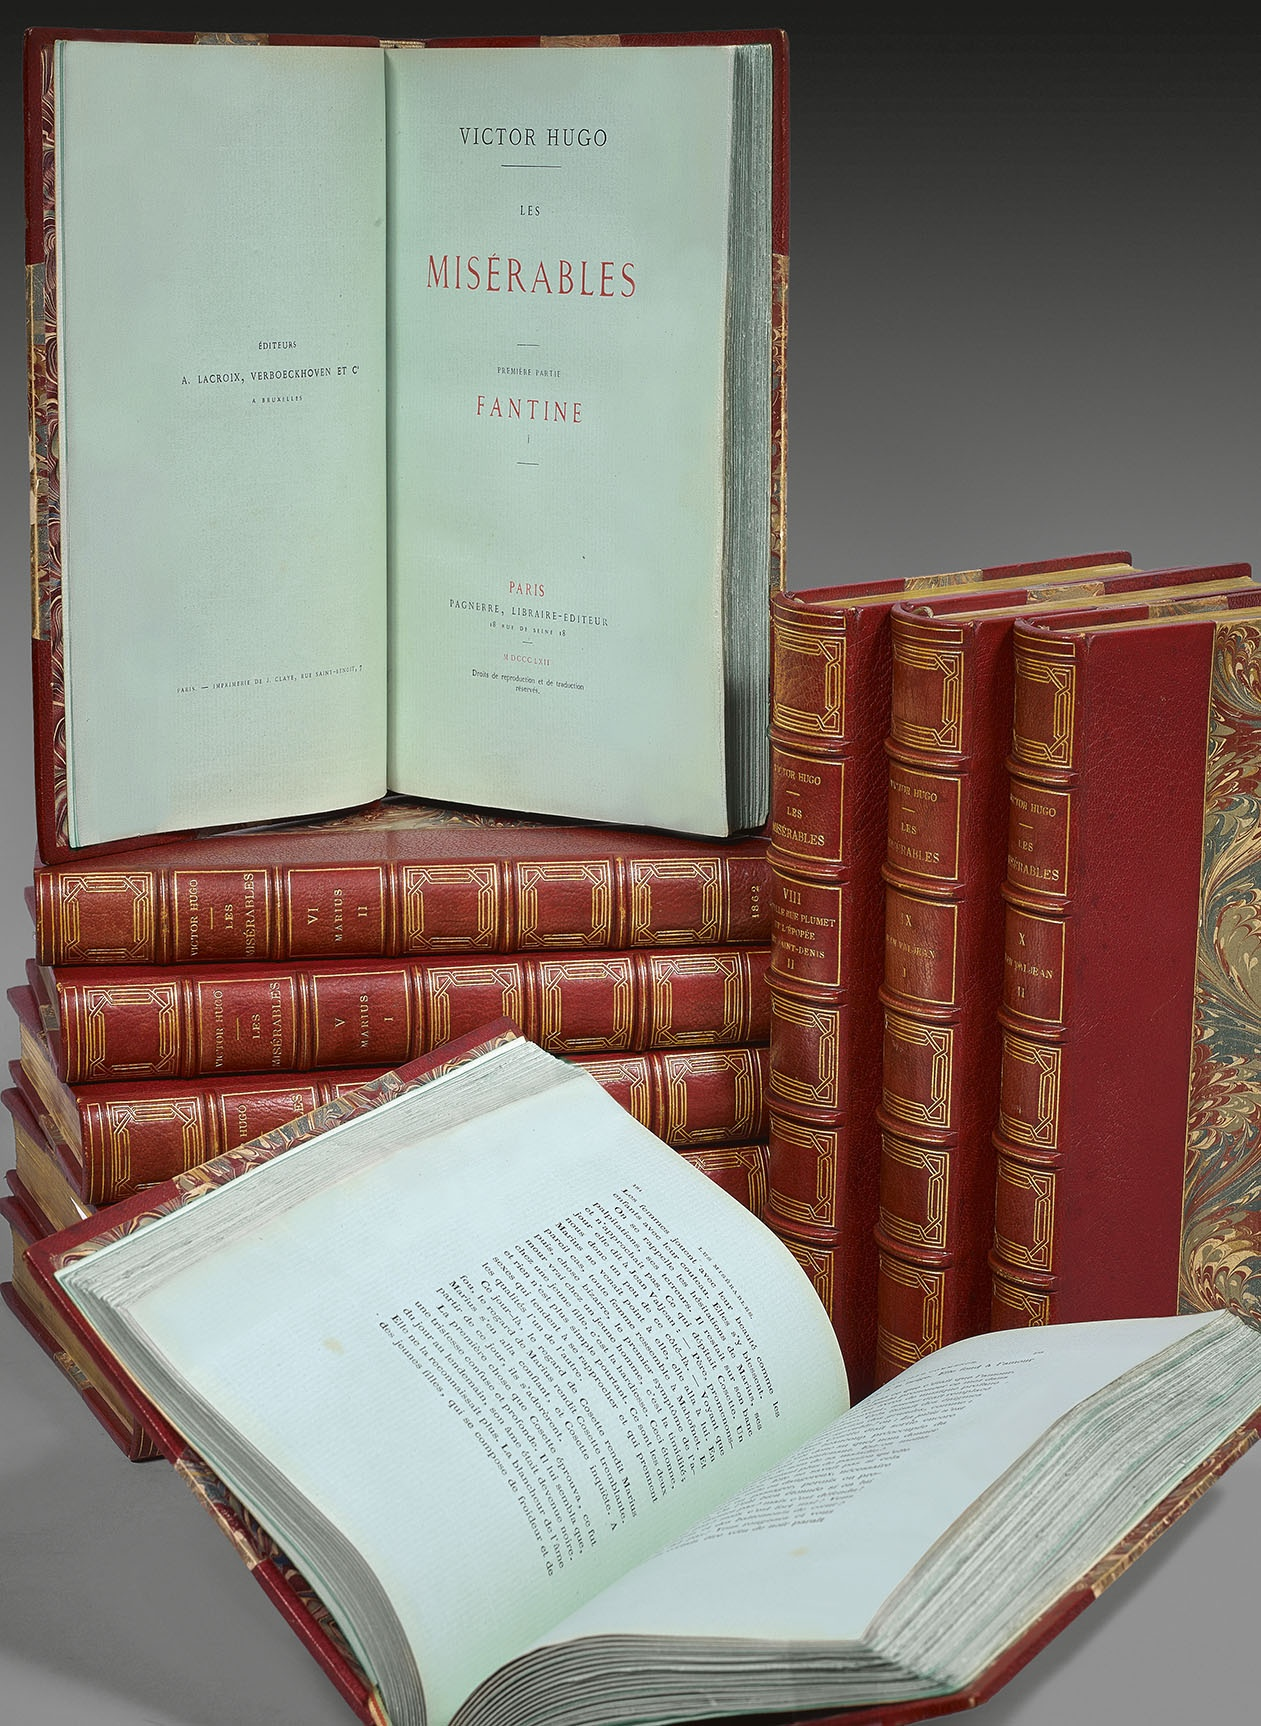 HUGO-Victor-Les-Miserables-rare-books-first-edition-precious-books-